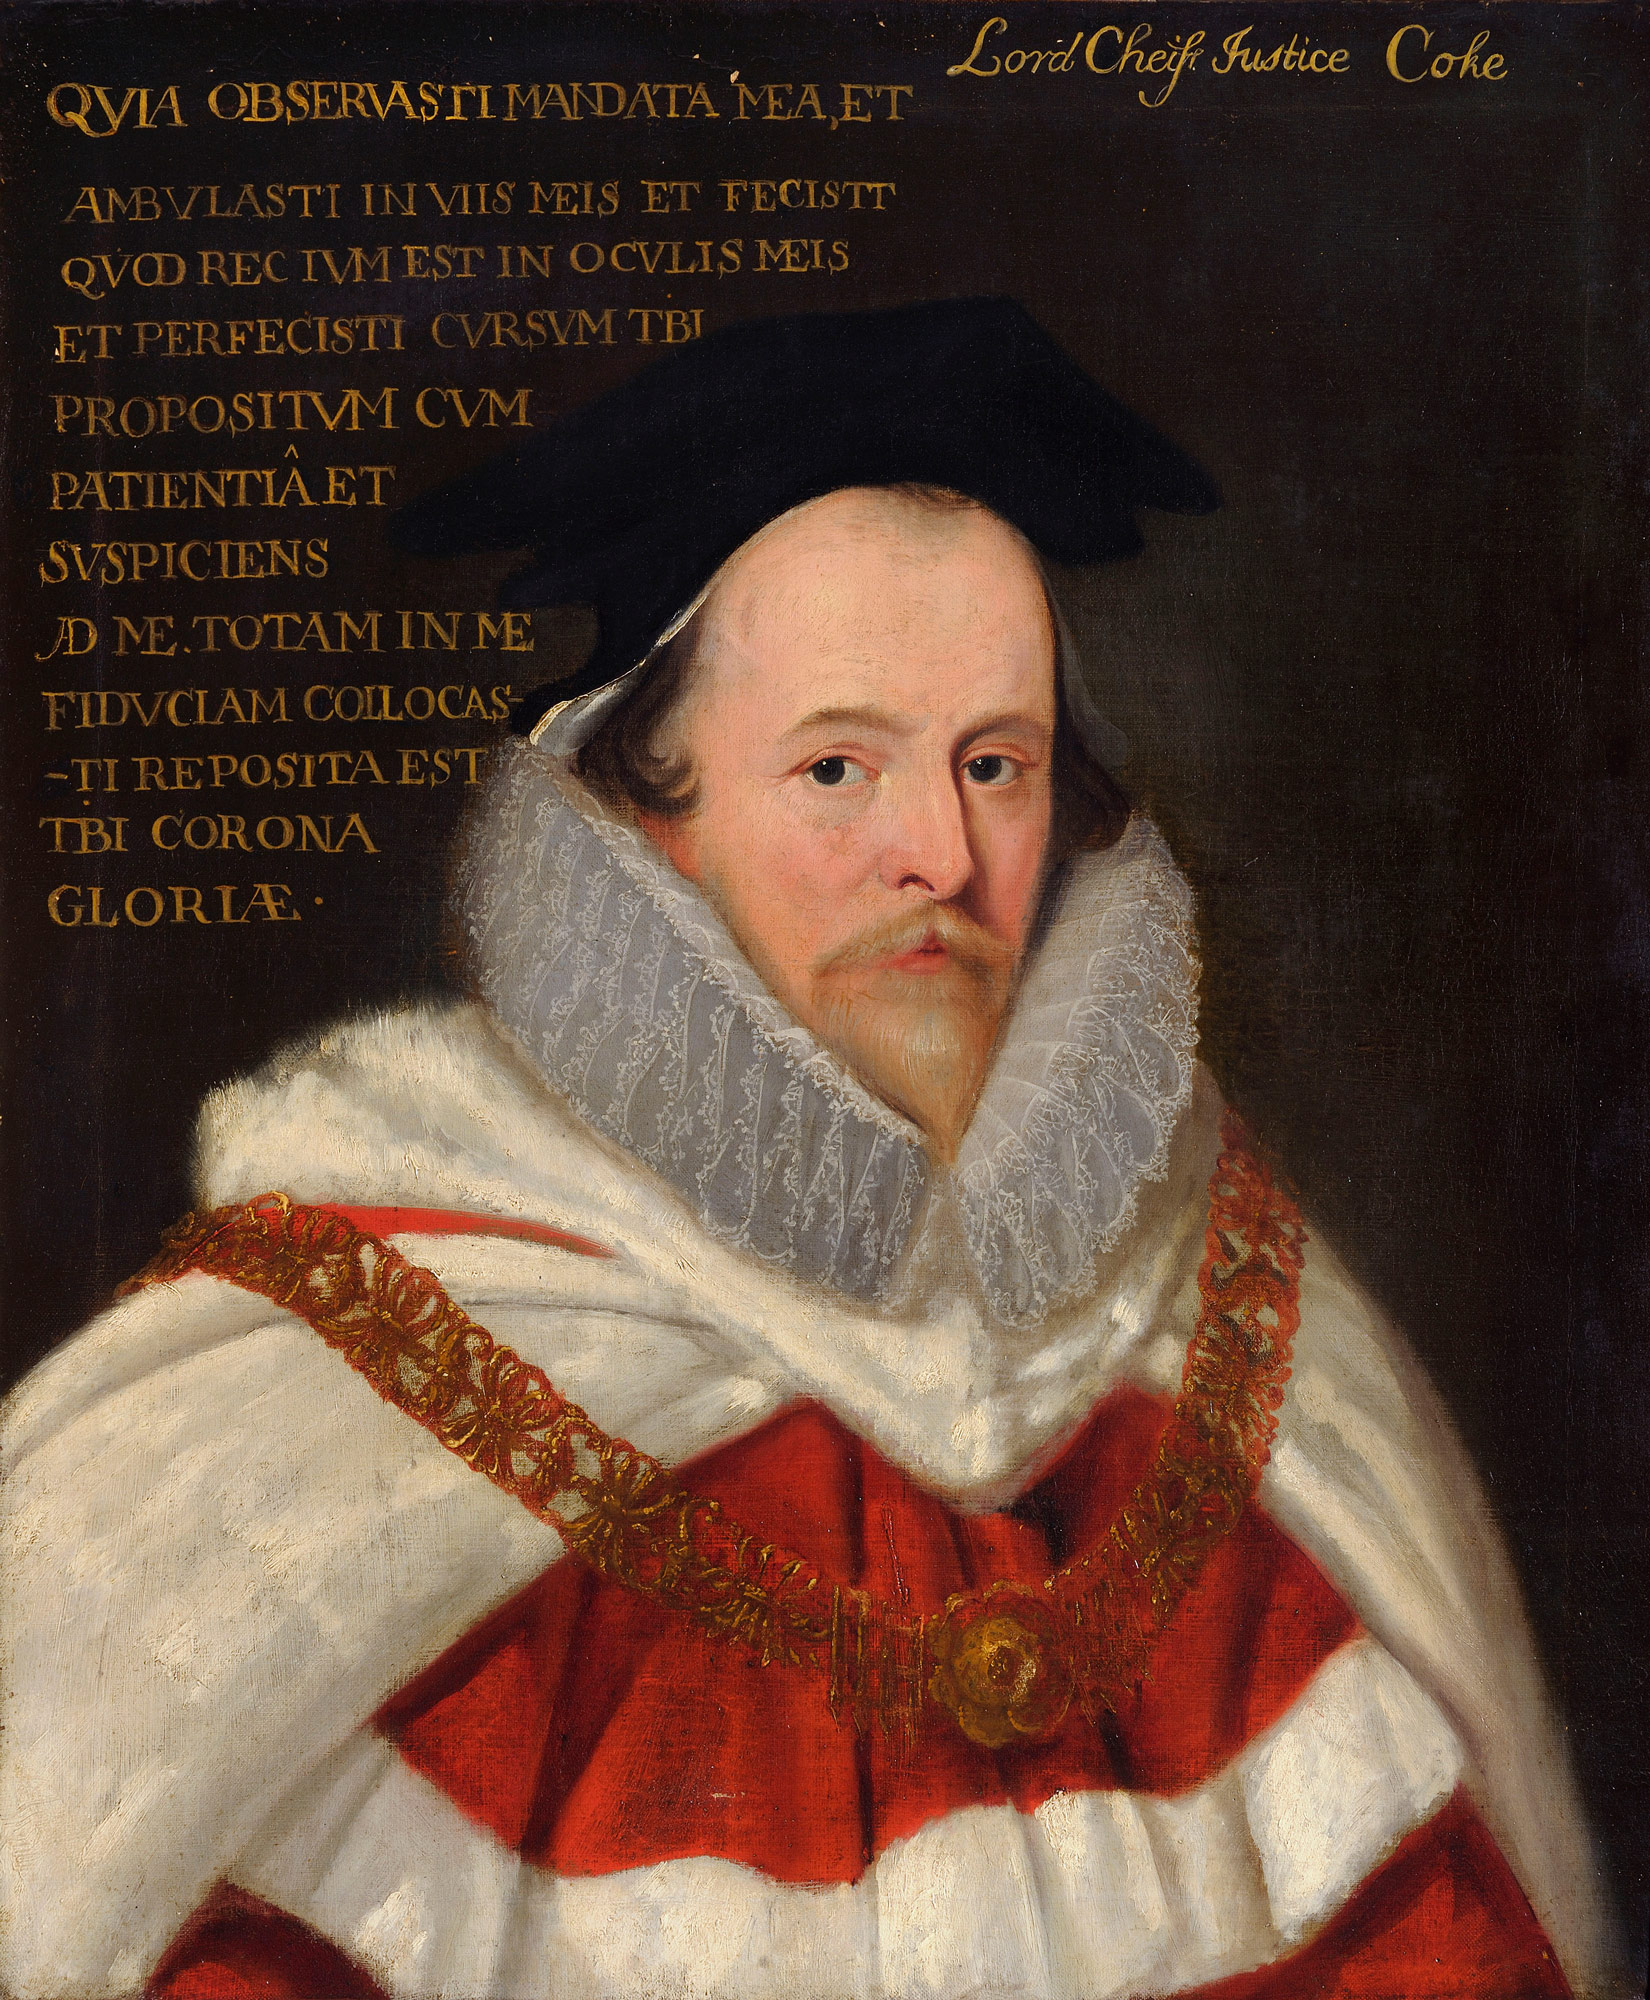 Portrait of Sir Edward Coke by an unknown artist